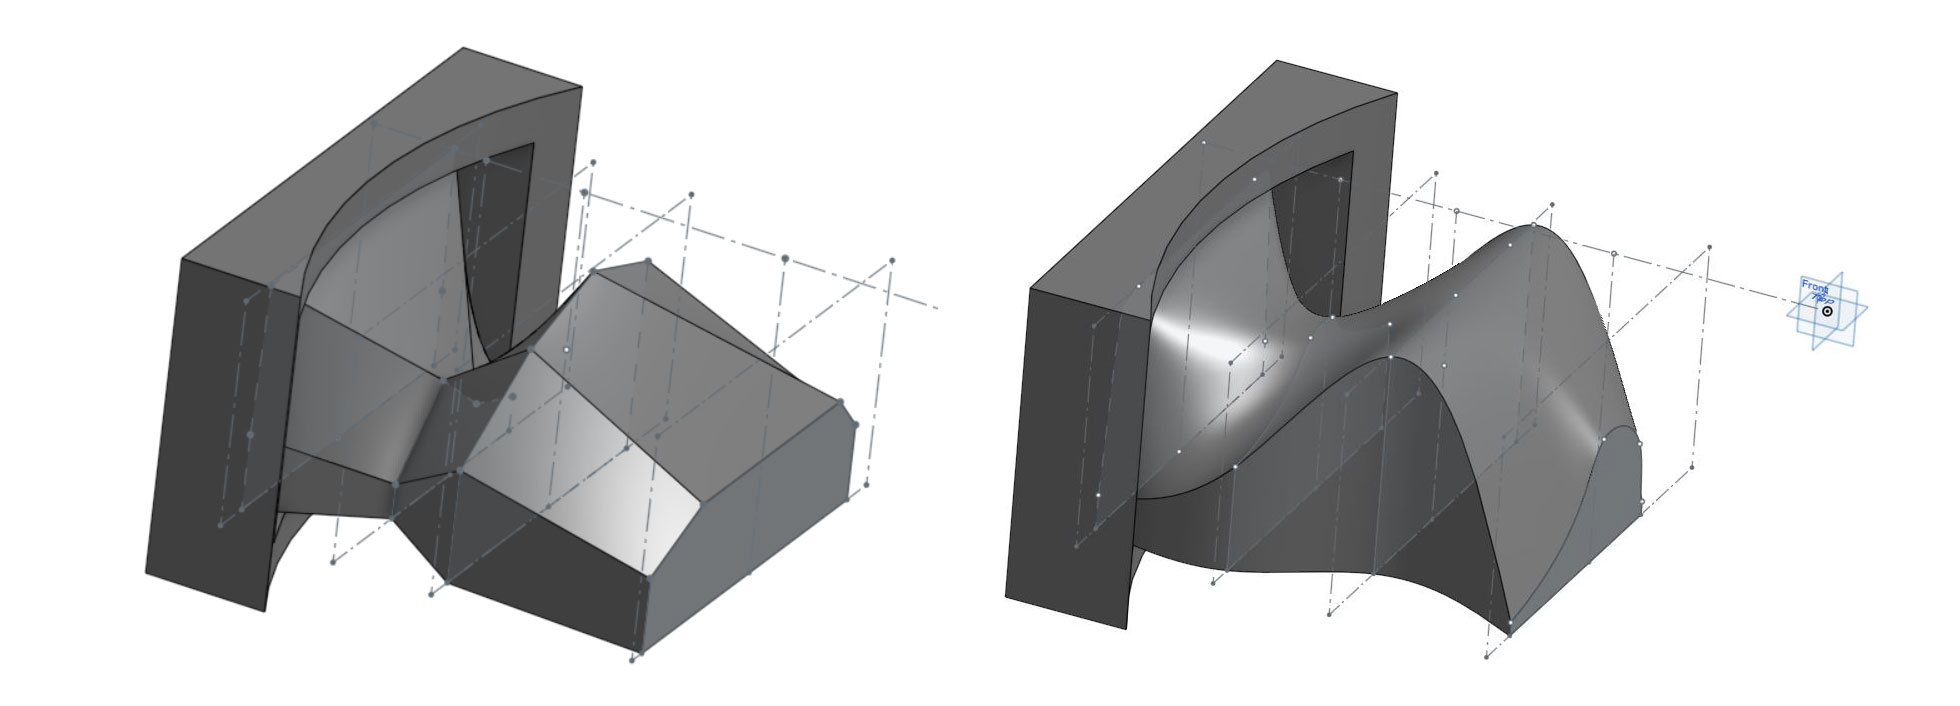 Two deflector designs, one with flat surfaces (left) and one that is curved (right).